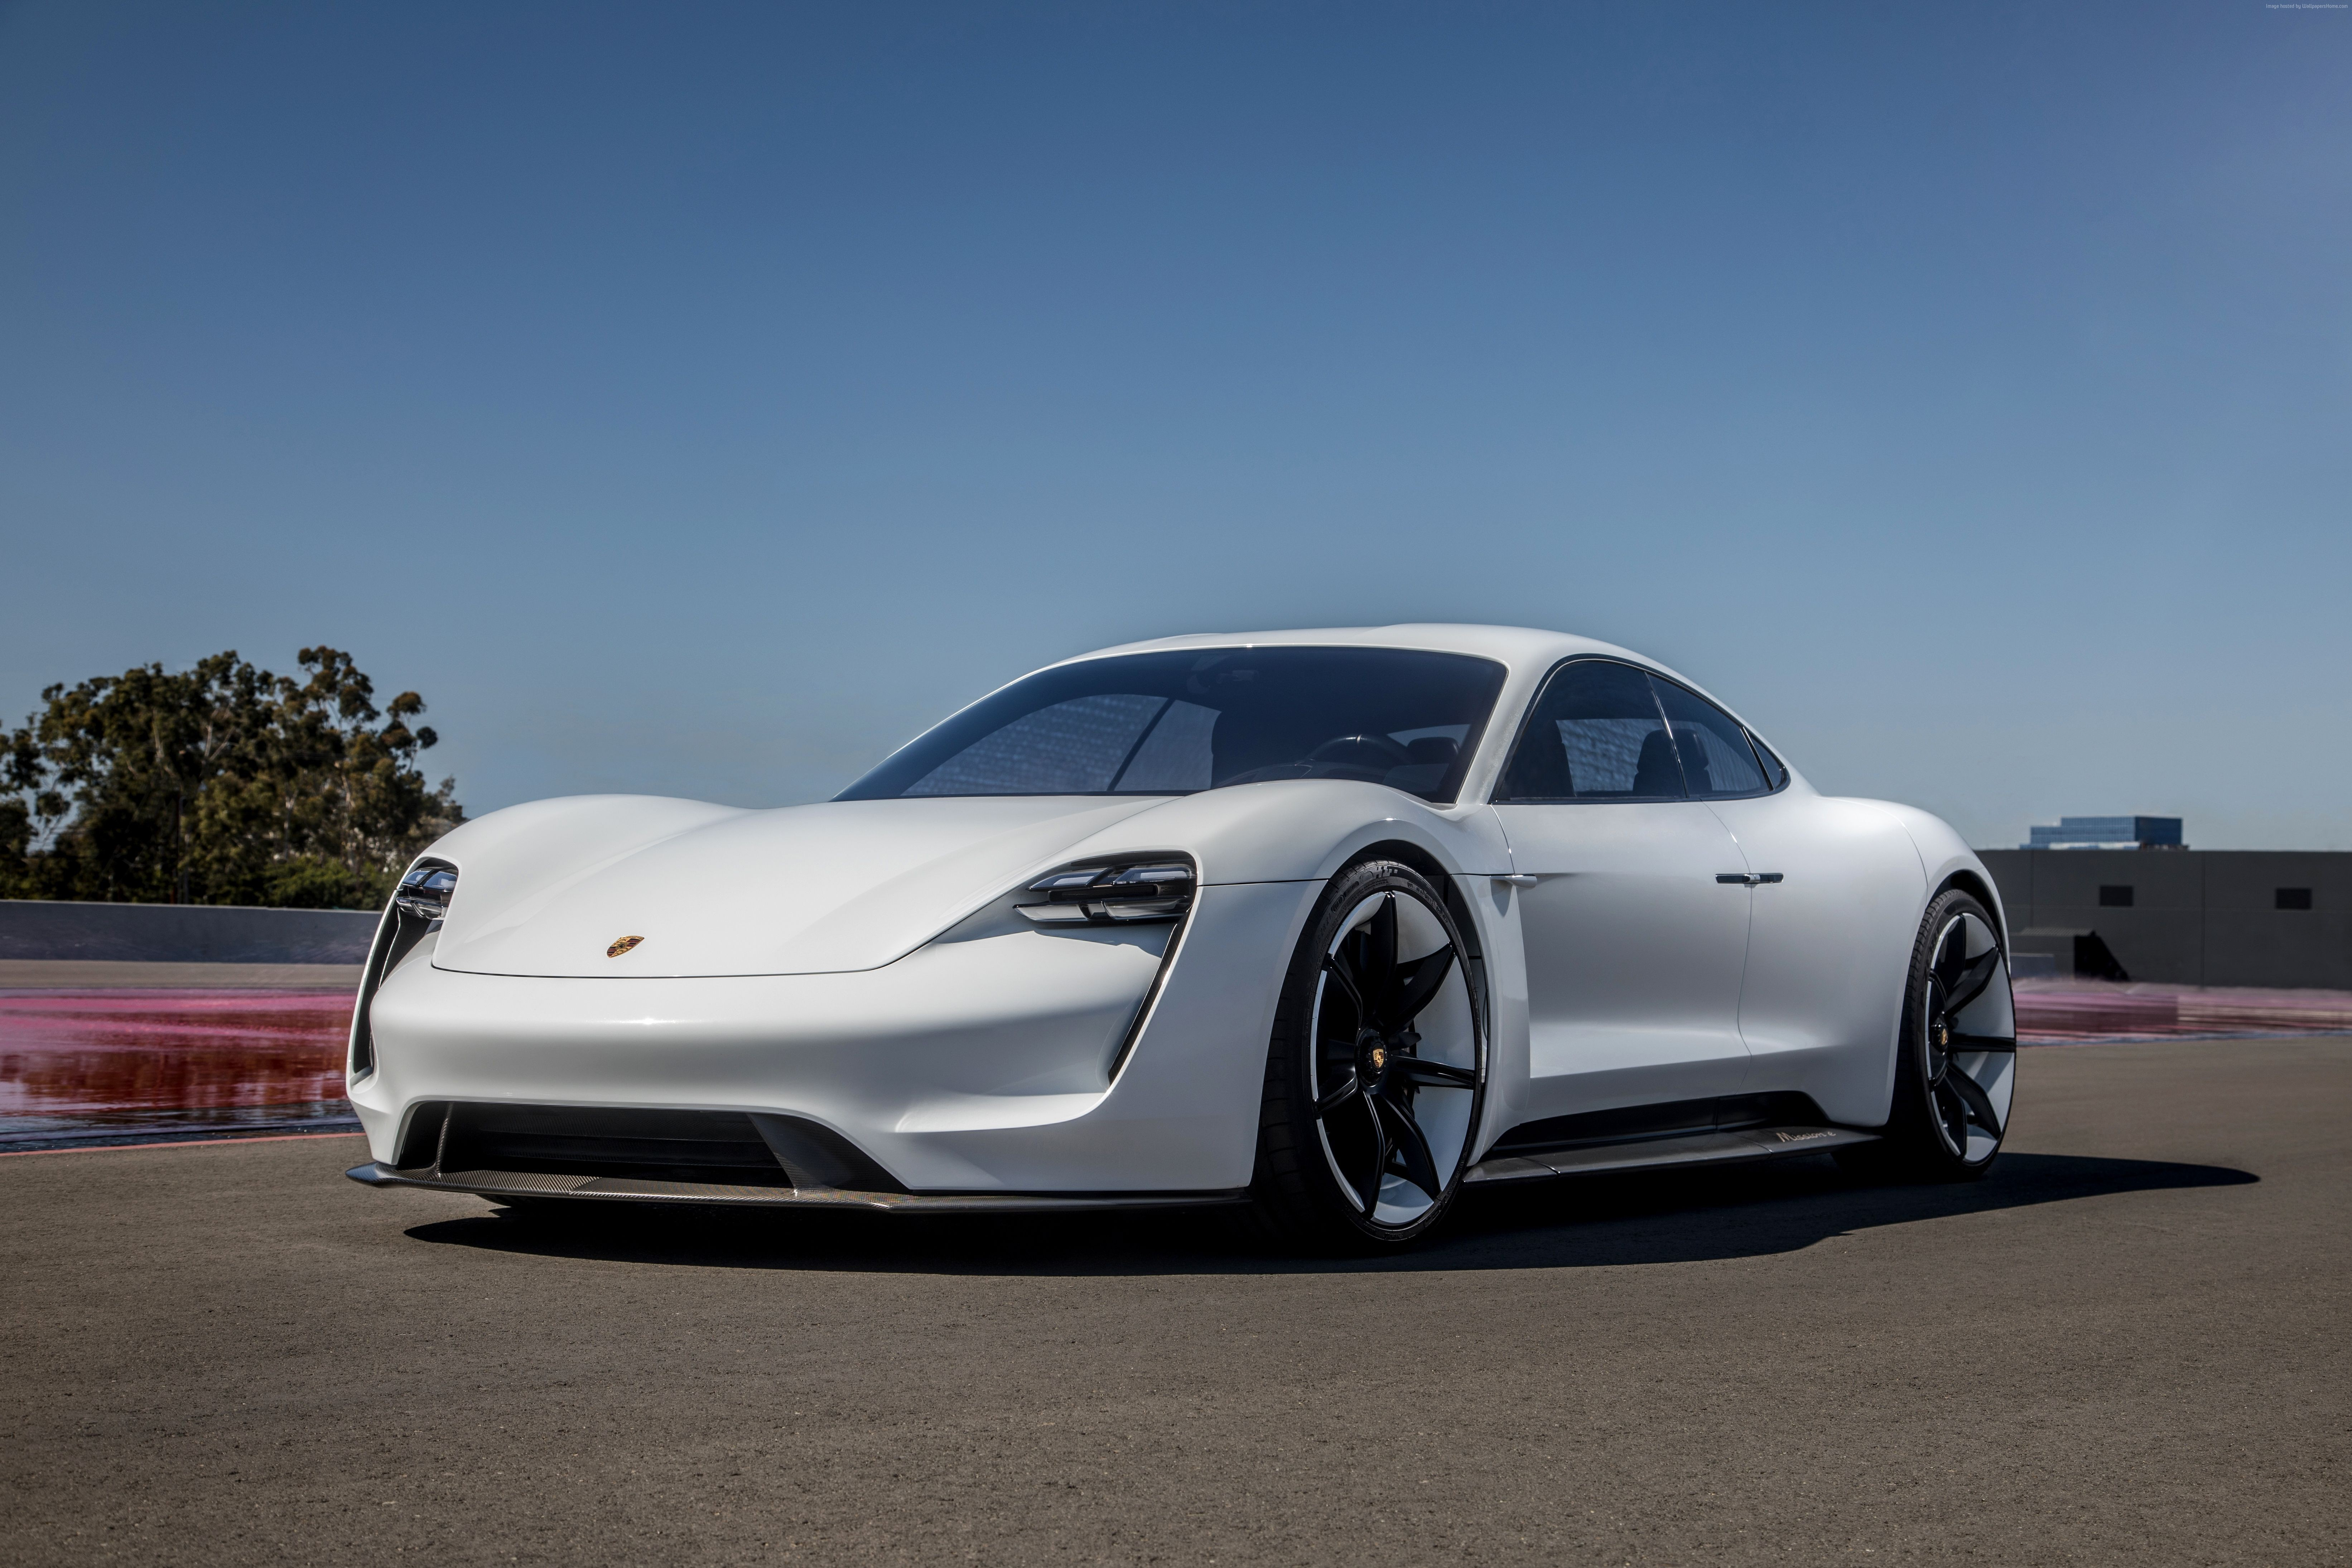 100824 4K Porsche Taycan supercar 2020 Cars Electric Car 6568x4379